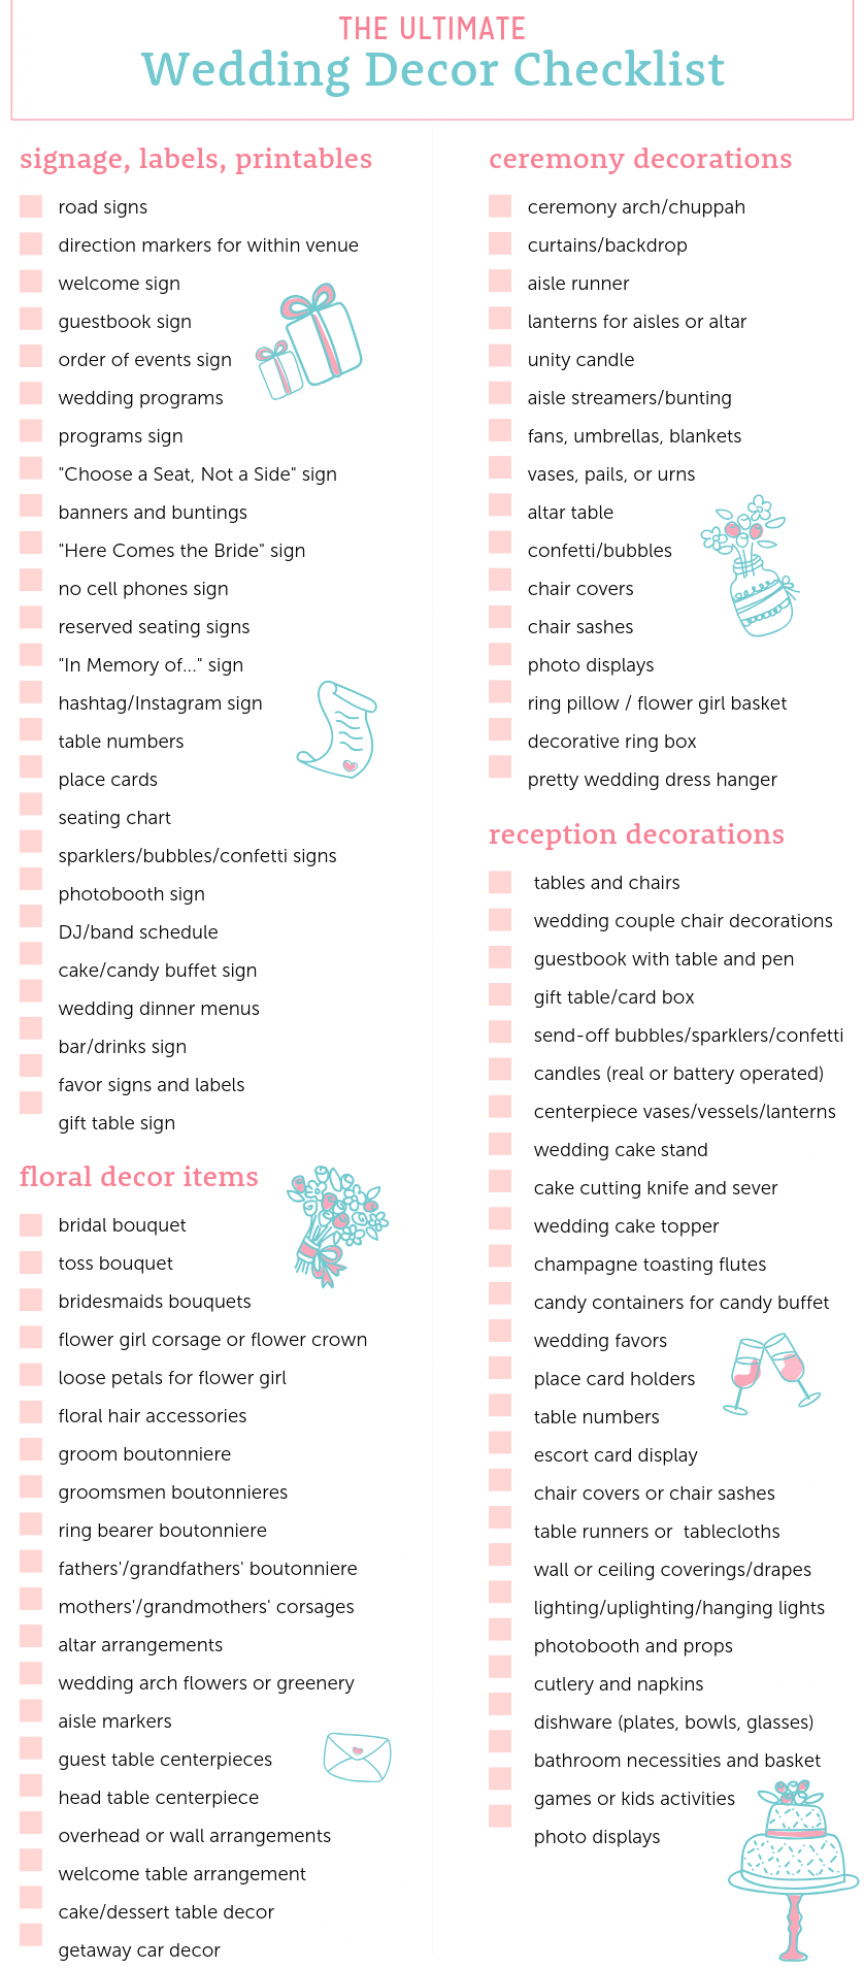 Ultimate Wedding Decor Checklist At The Budget Savvy Bride In 2020 Decor Checklist Wedding Decorations Wedding Checklist